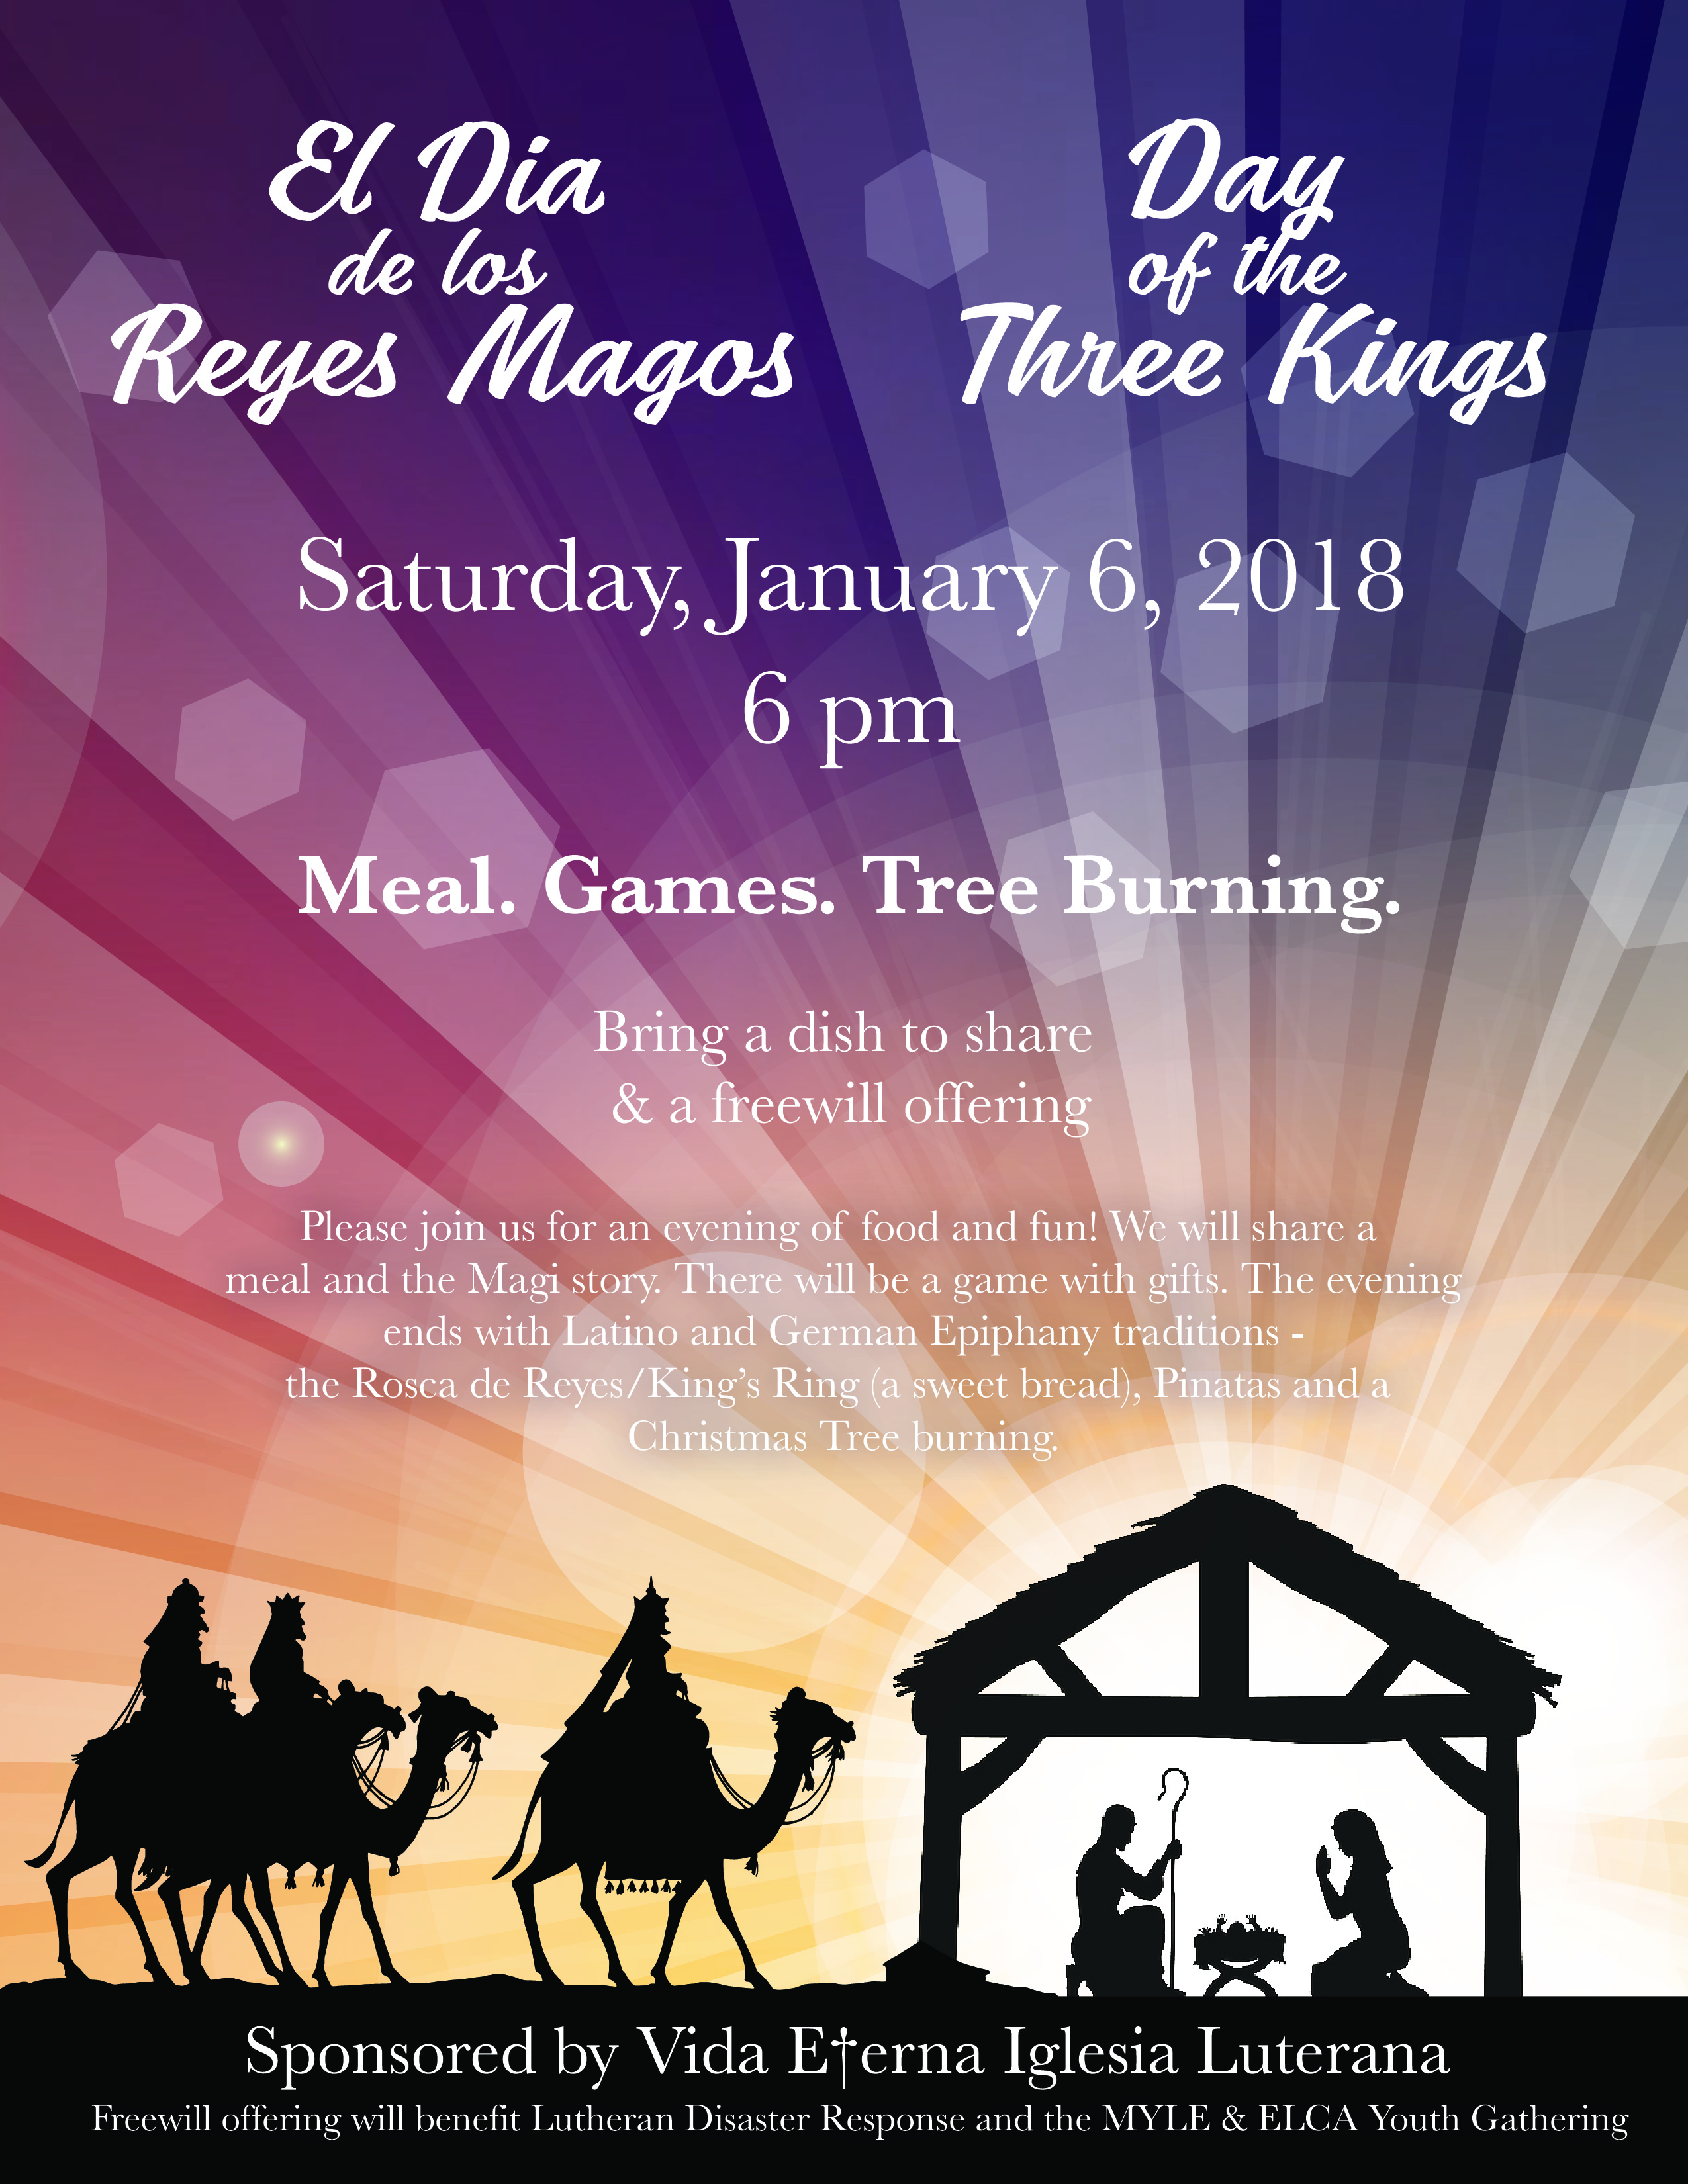 2018 dia de los reyes three kings 01